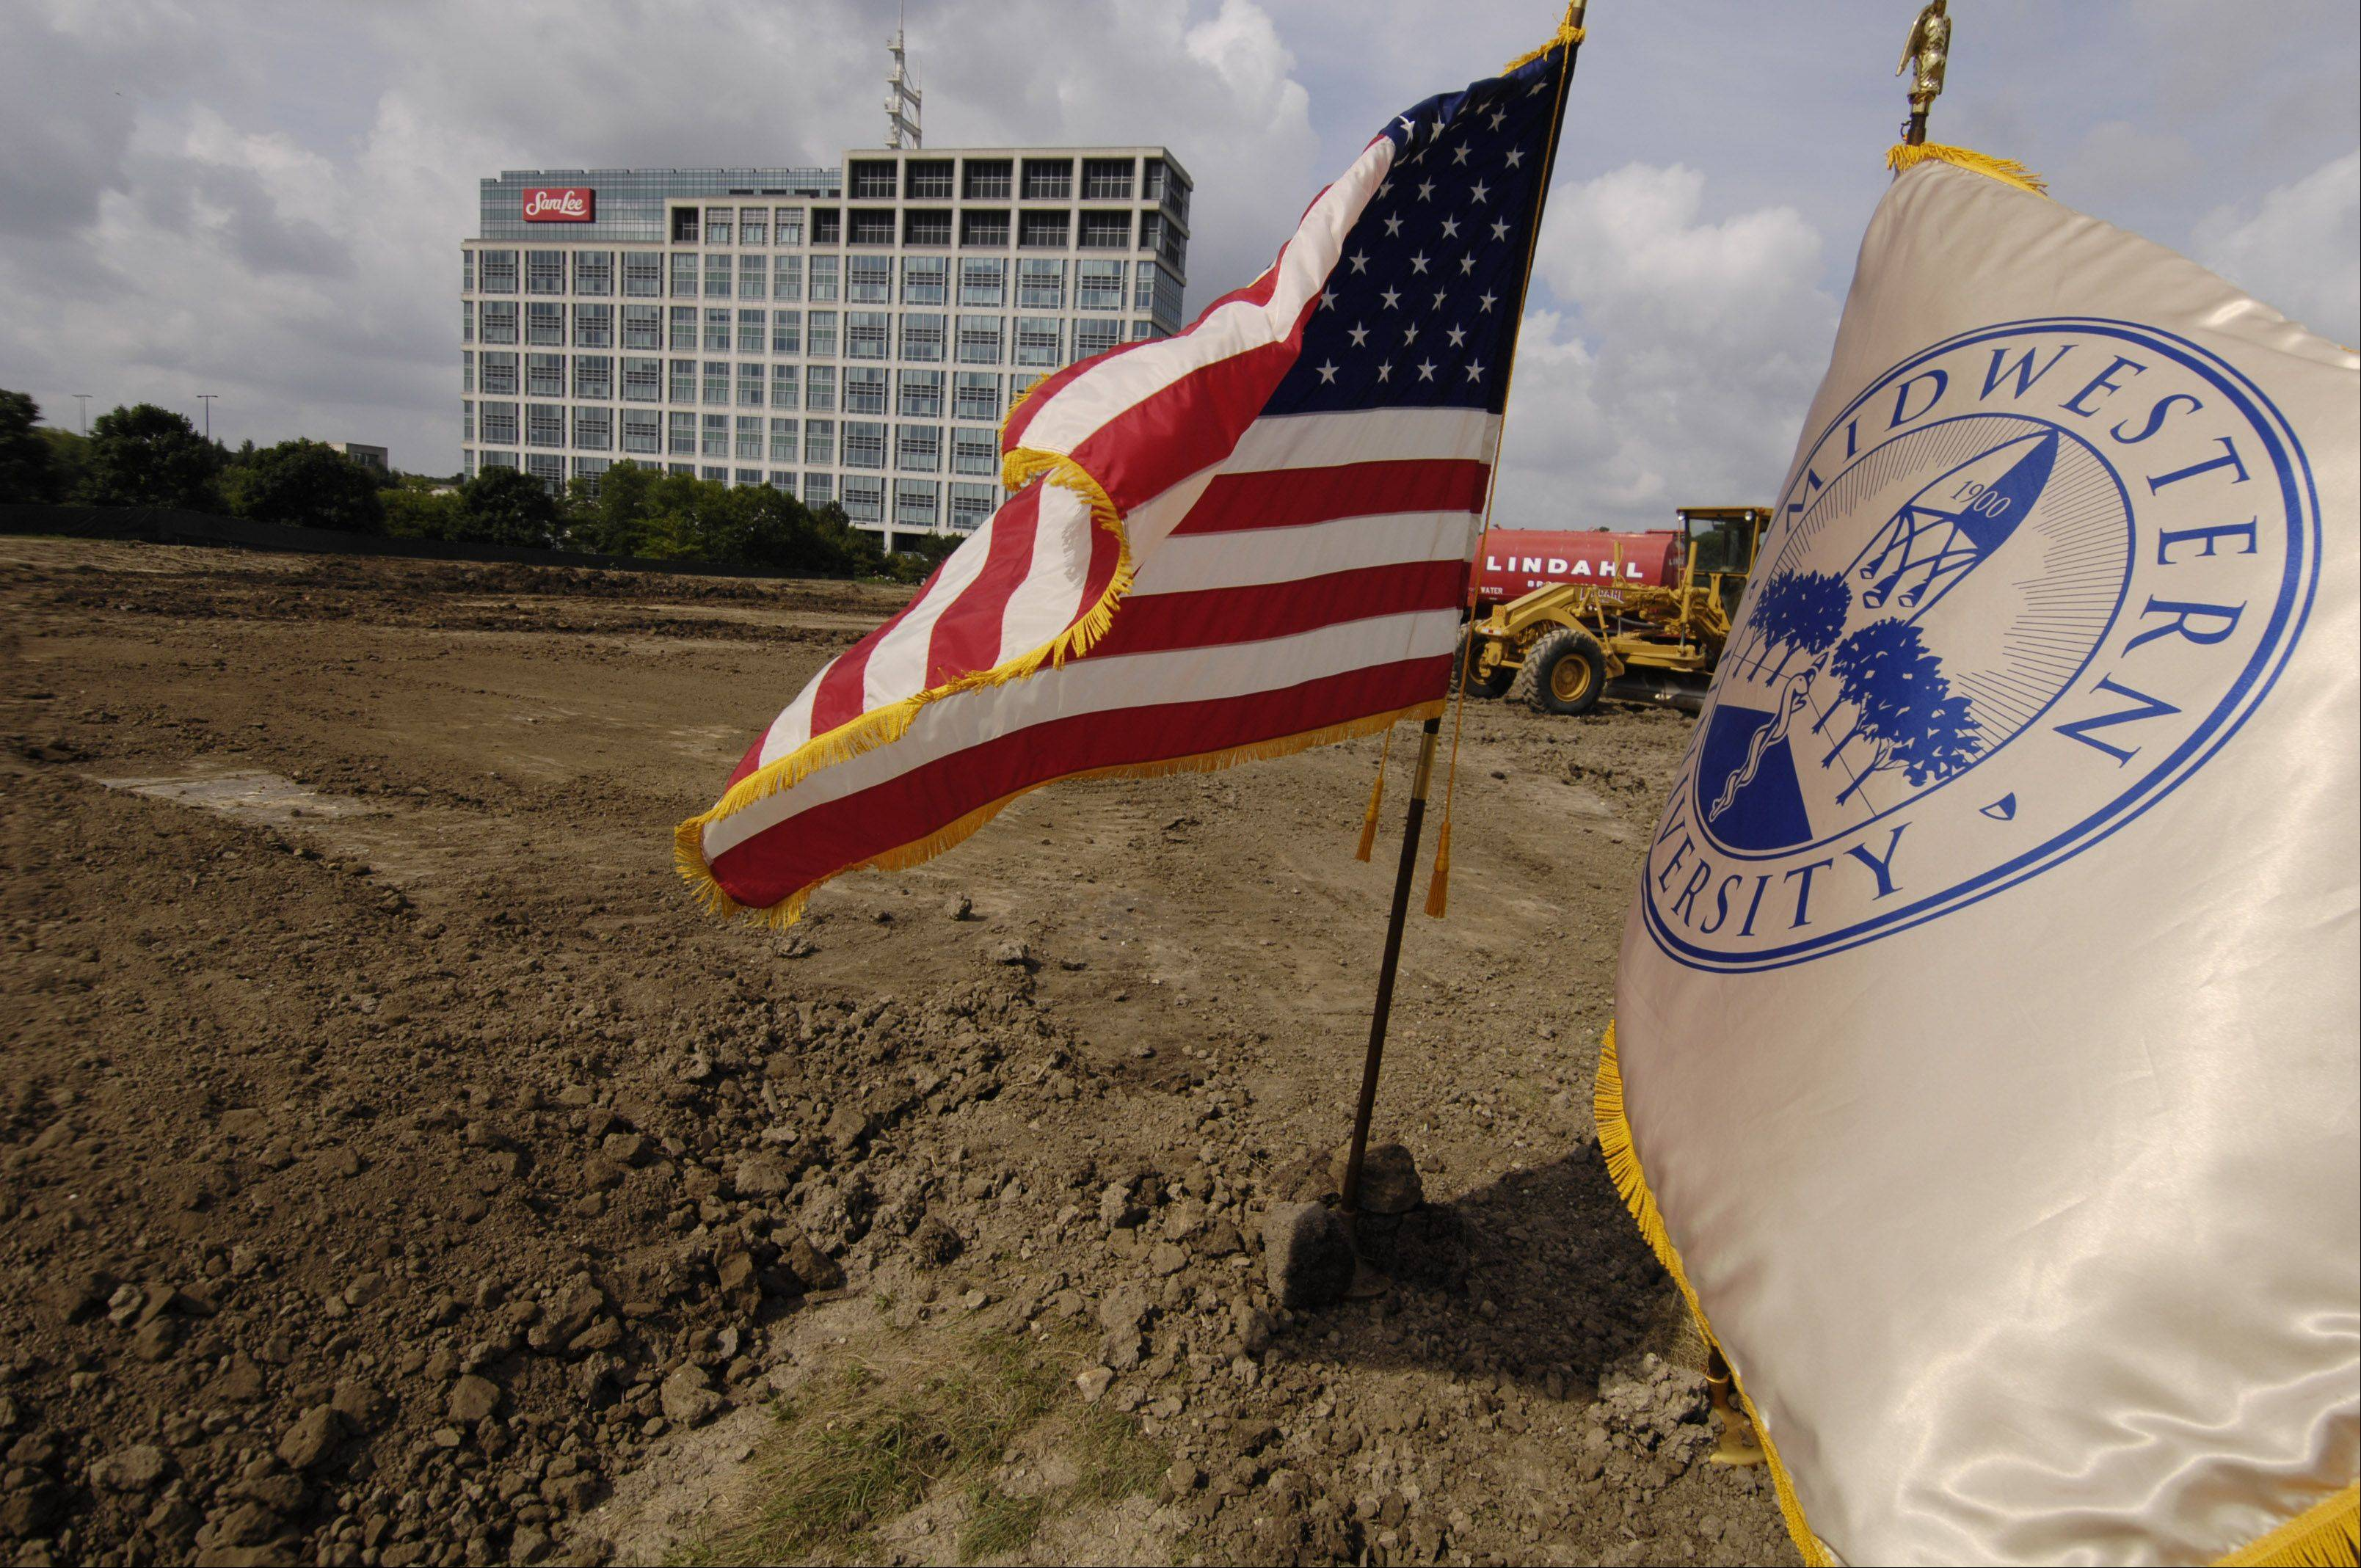 The American and Midwestern University flags fly during the ground breaking ceremony for the new Midwestern University clinic in Downers Grove.